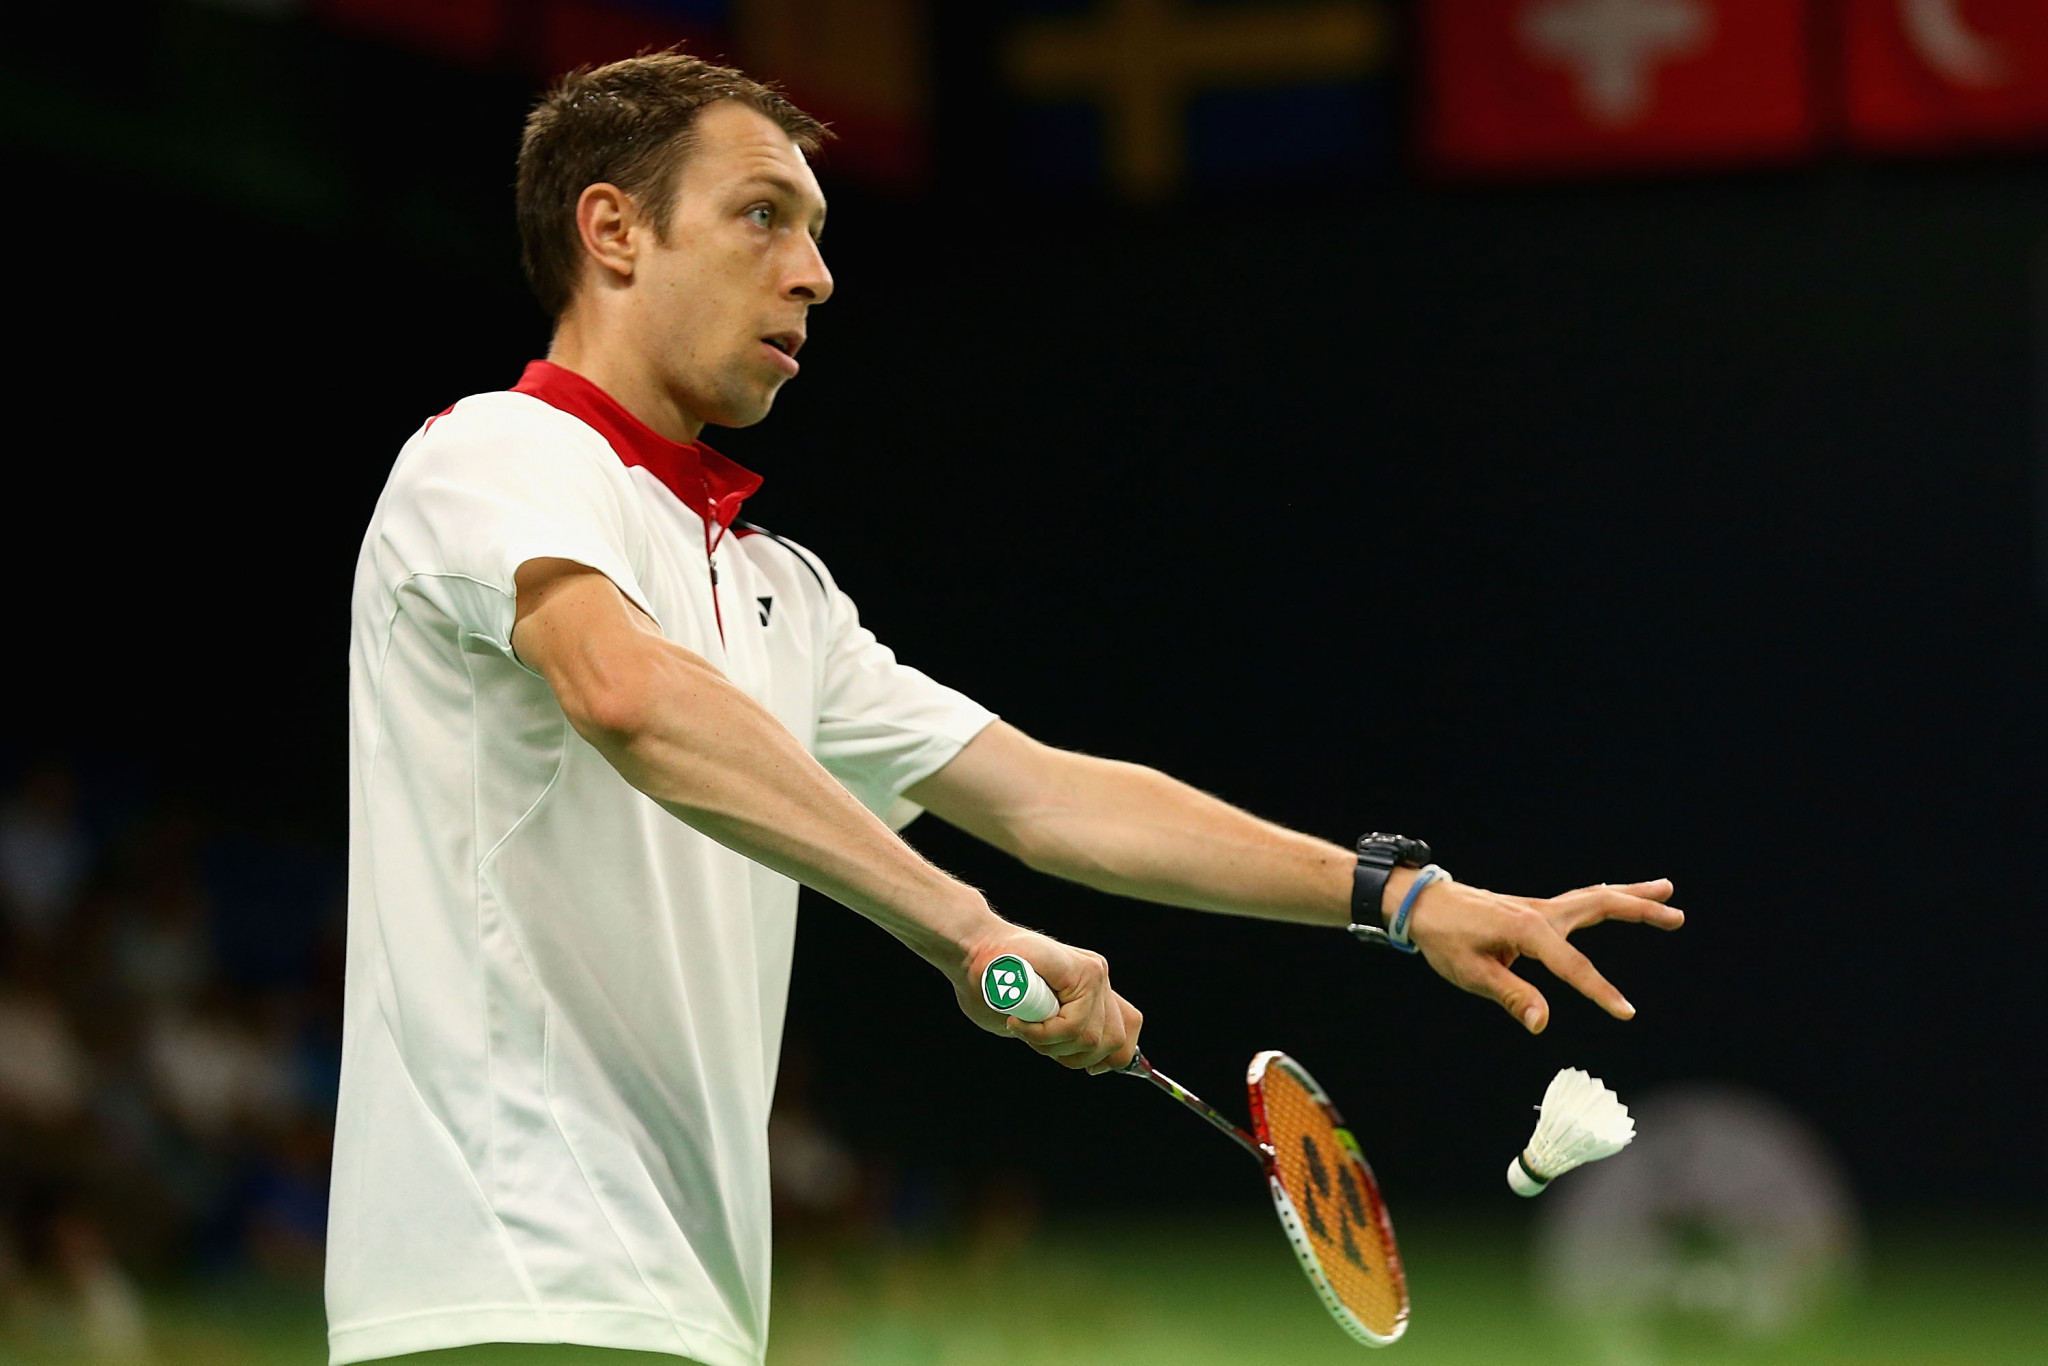 Top men's singles seeds through on day three of Spain Masters